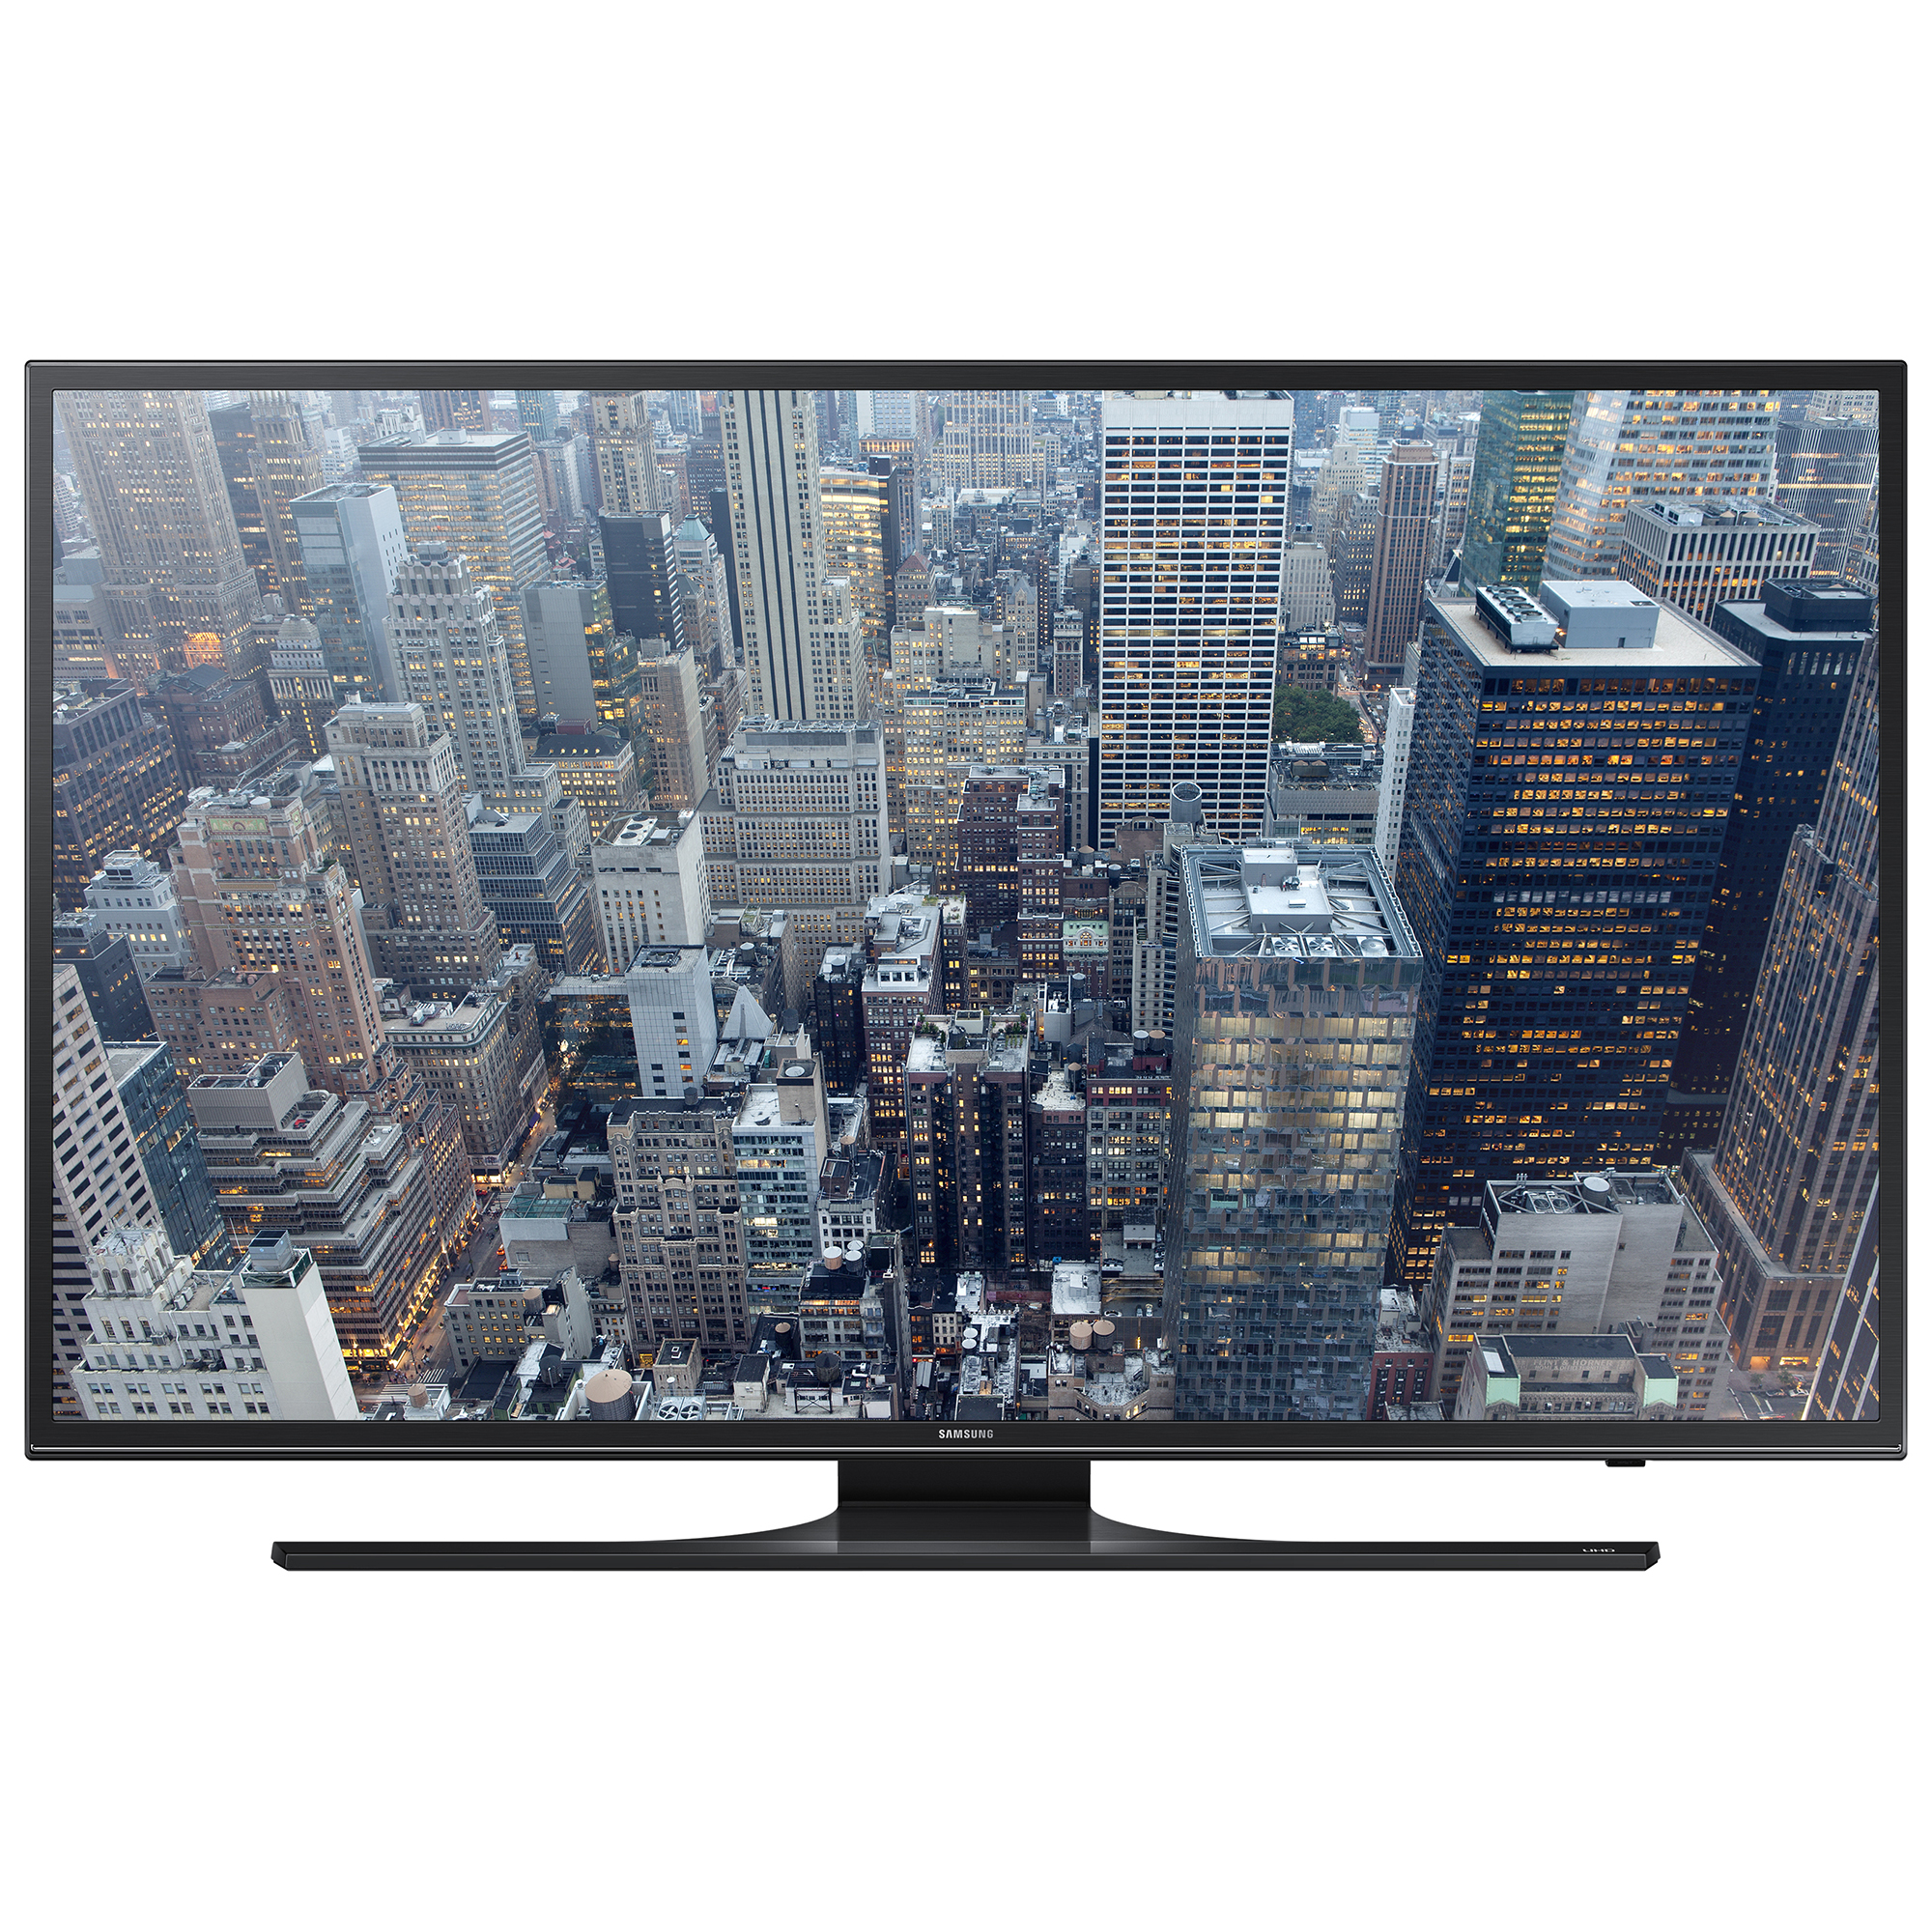 Televizor Smart LED Samsung 138 cm Ultra HD/4K 55JU6400 Quad Core USB CI+ WiFi OS Tizen Black